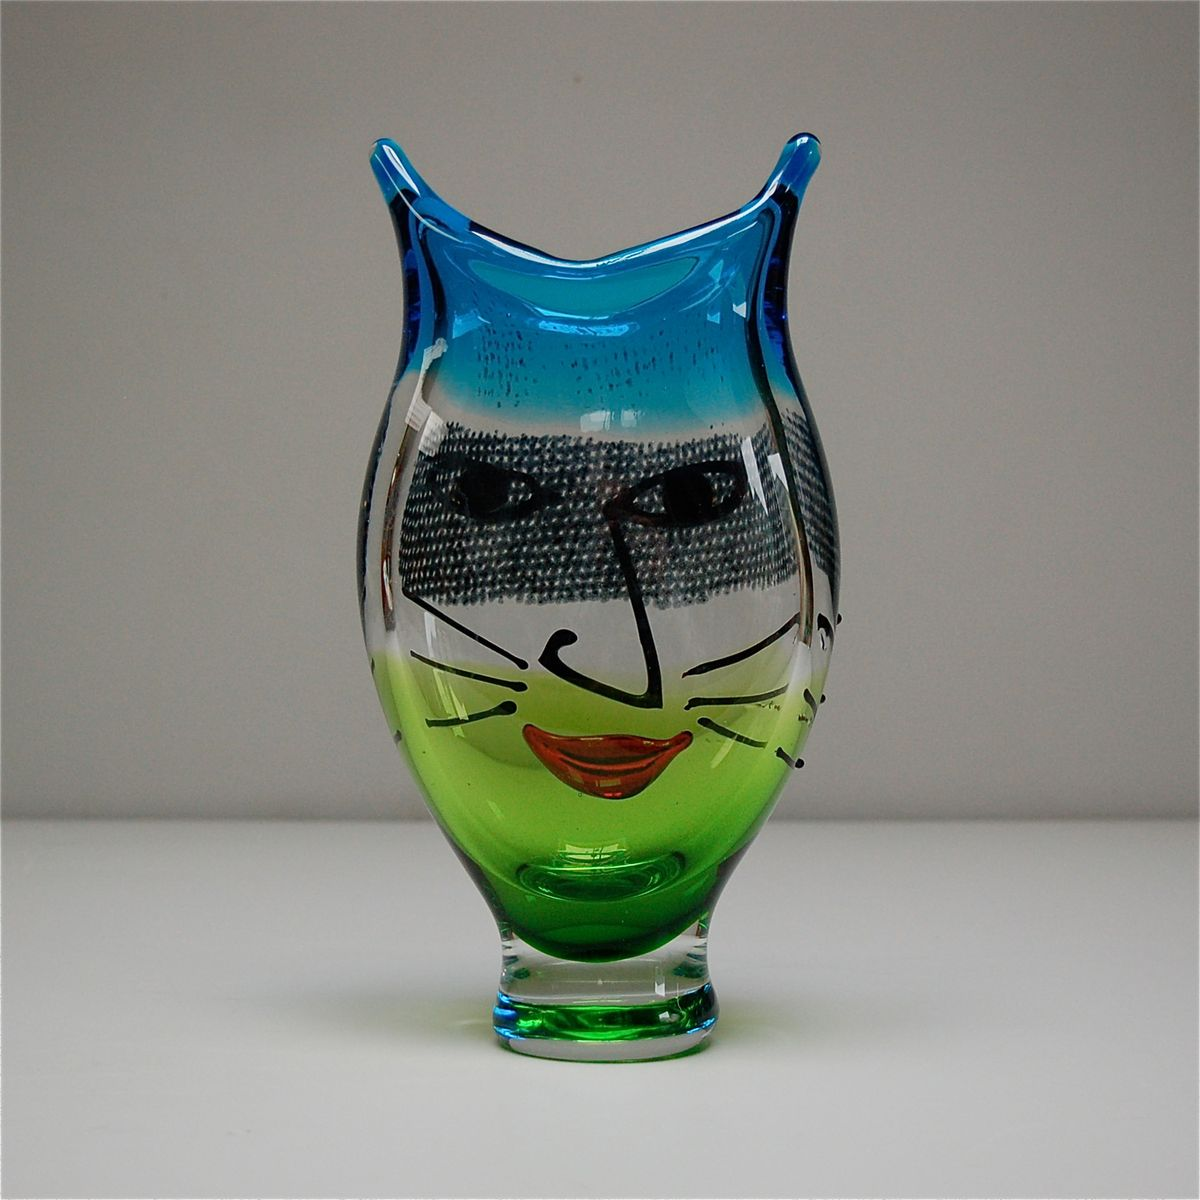 Murano glass vase with a cats face 1980s for sale at pamono murano glass vase with a cats face 1980s reviewsmspy